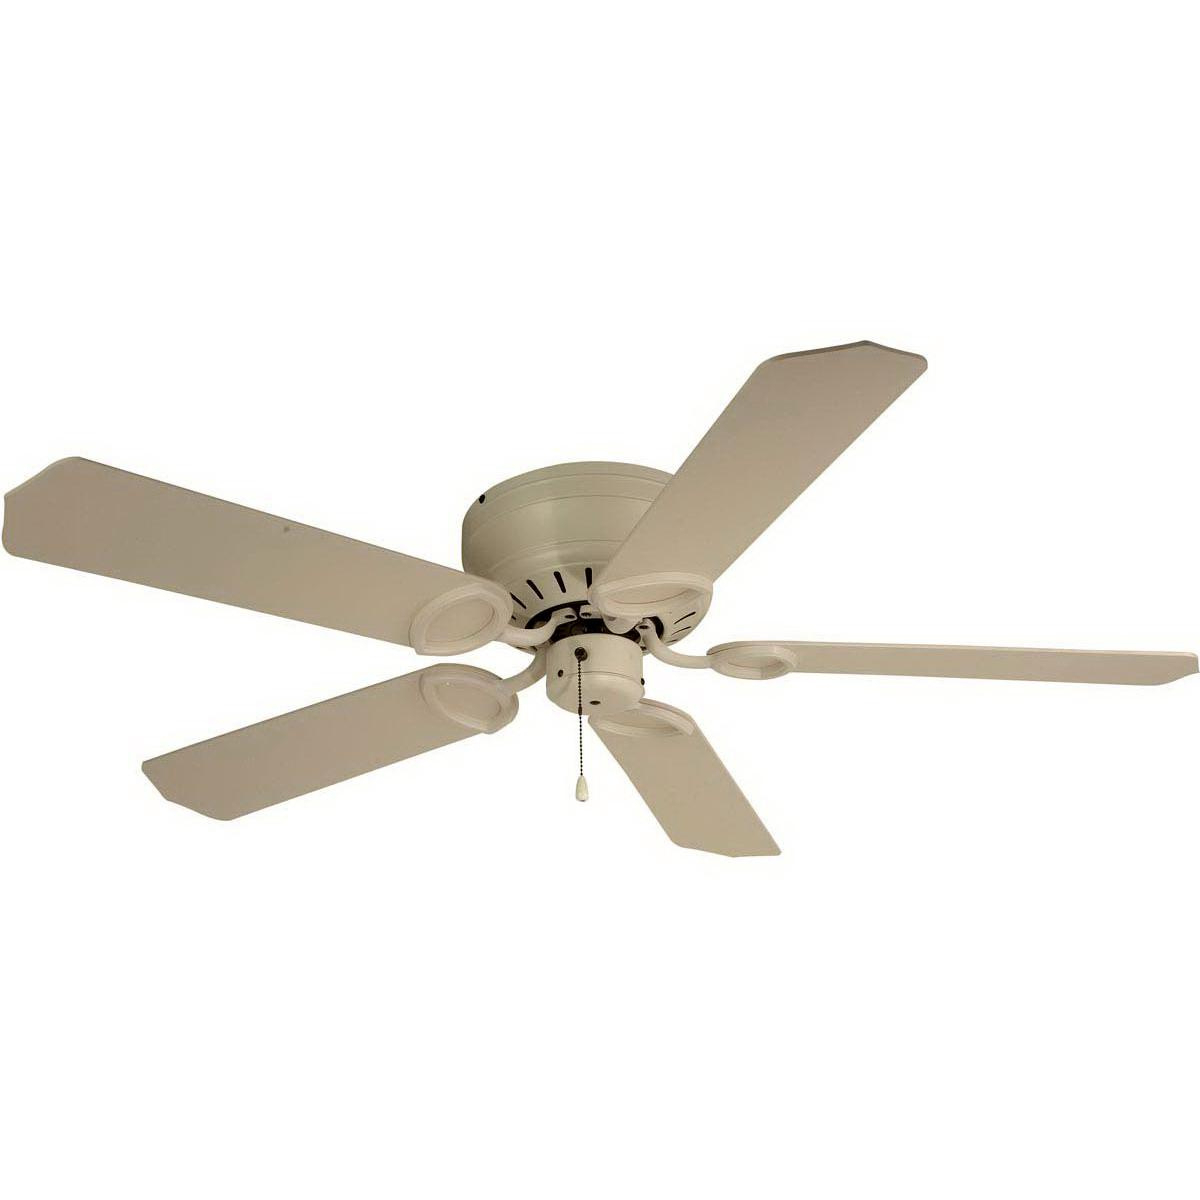 Craftmade Uh52aw Pro Universal Hugger Ceiling Fan 52 Inch 5 With Regard To Best And Newest Dyno 5 Blade Ceiling Fans (View 17 of 20)